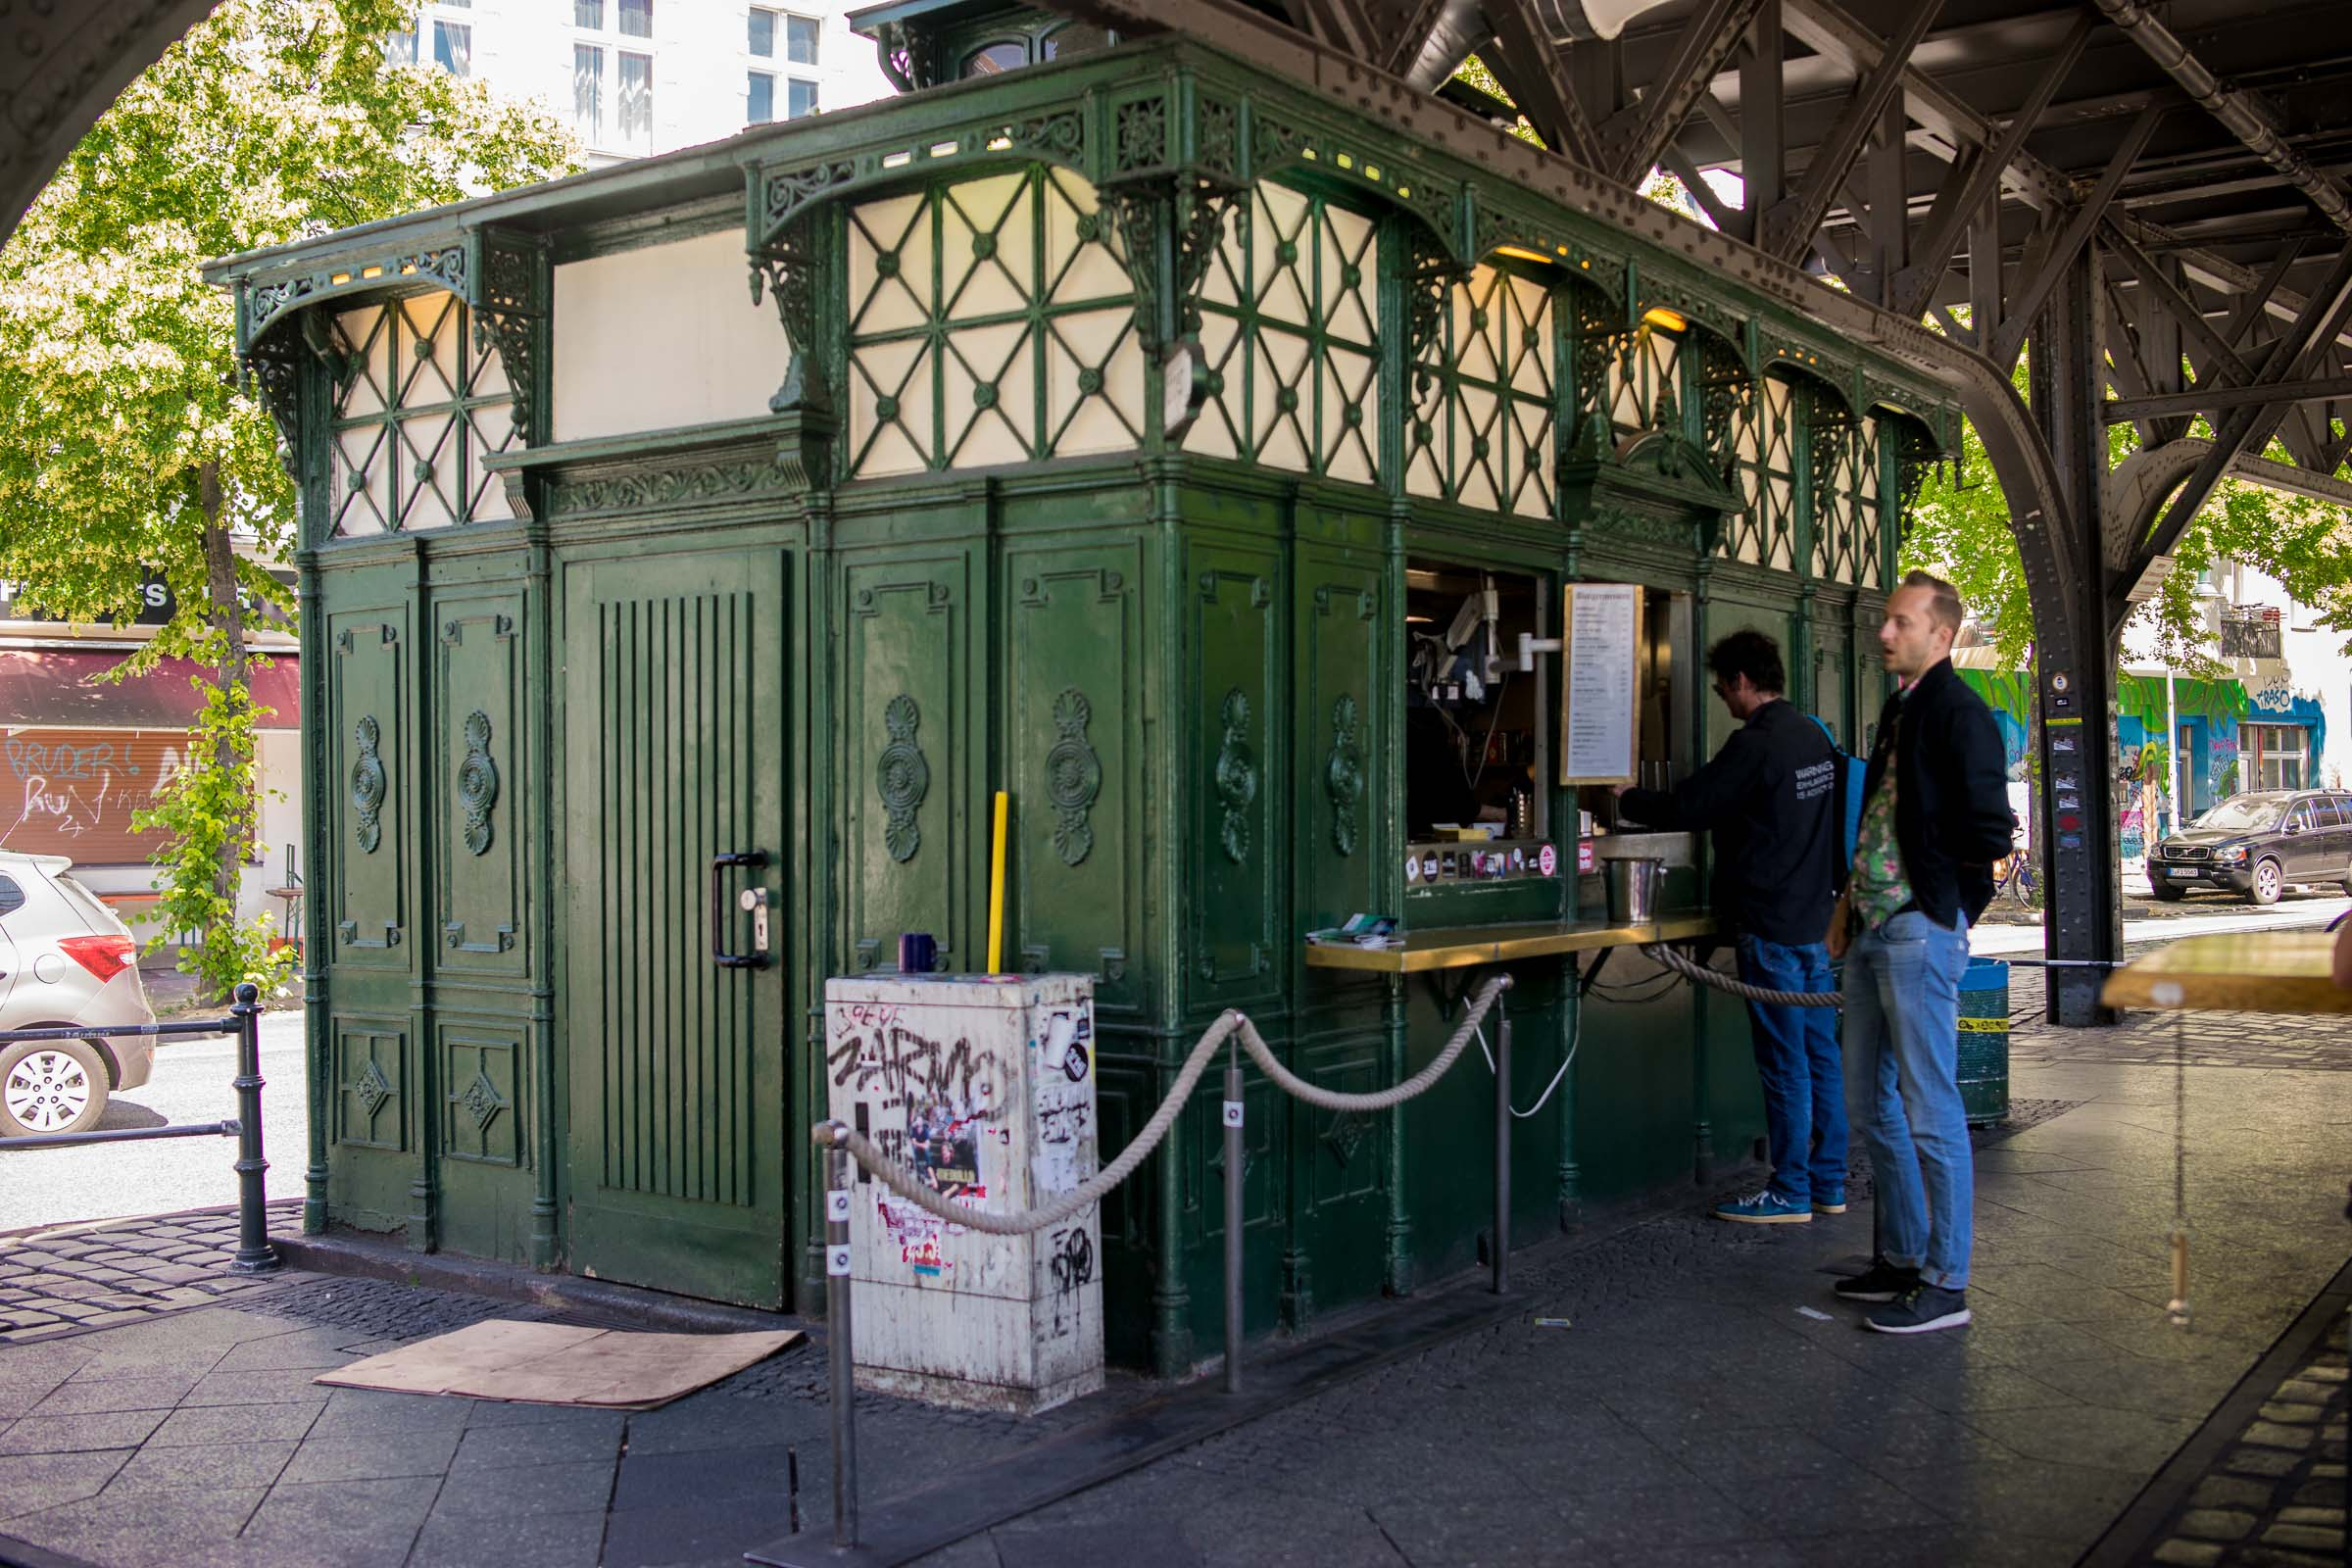 Burgermeister,the little green stand that could. (If only the queue could always be this short).